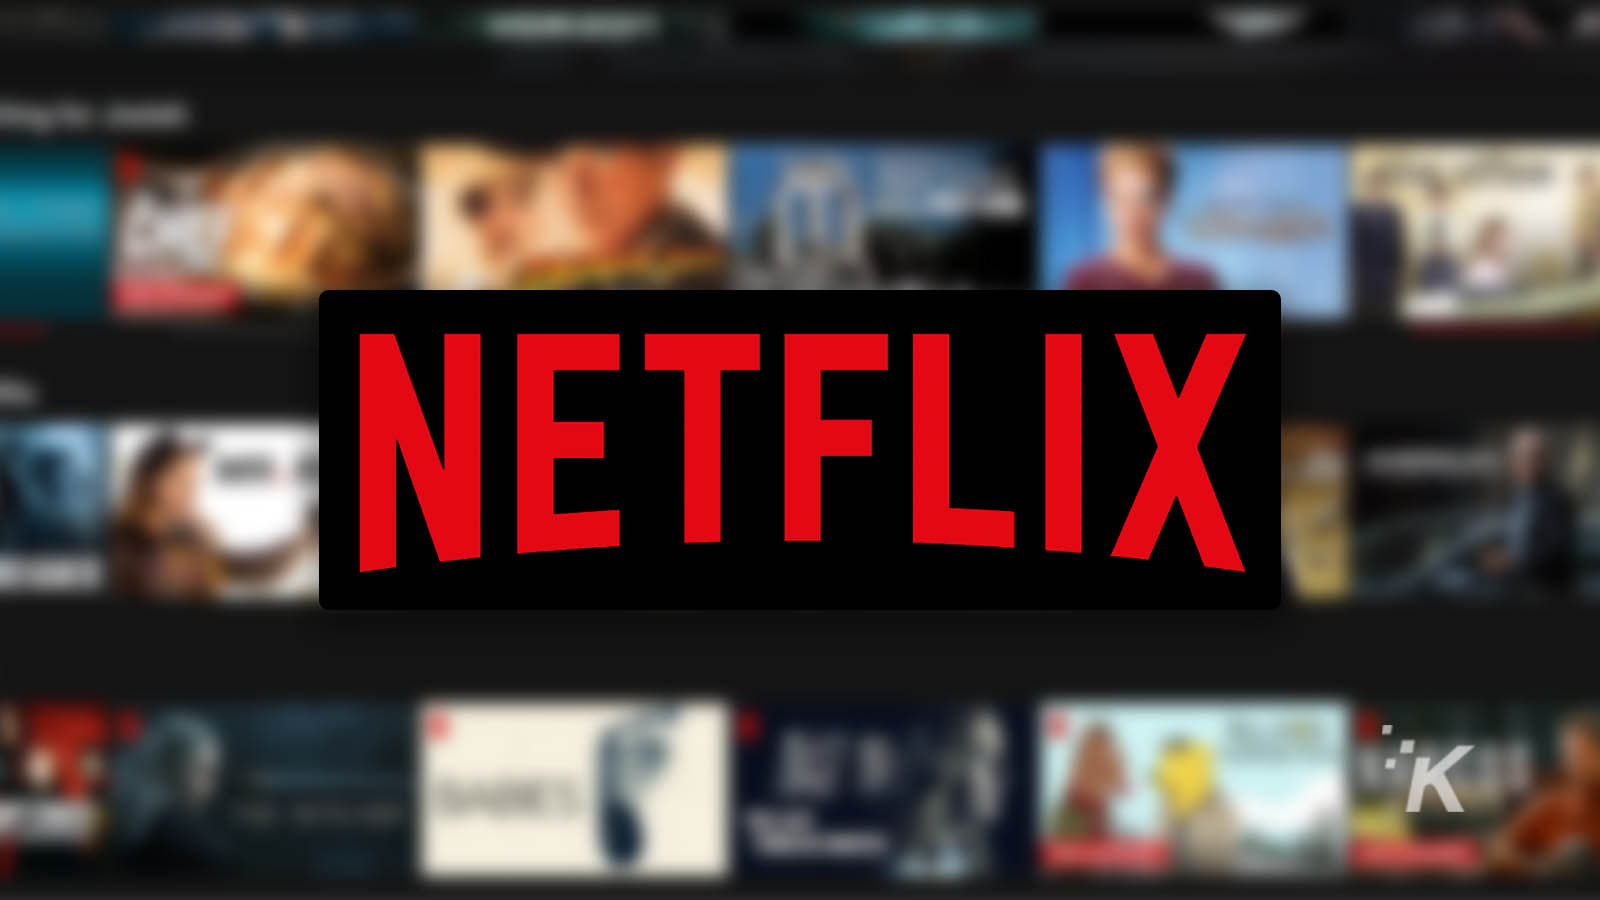 netflix logo on blurred background